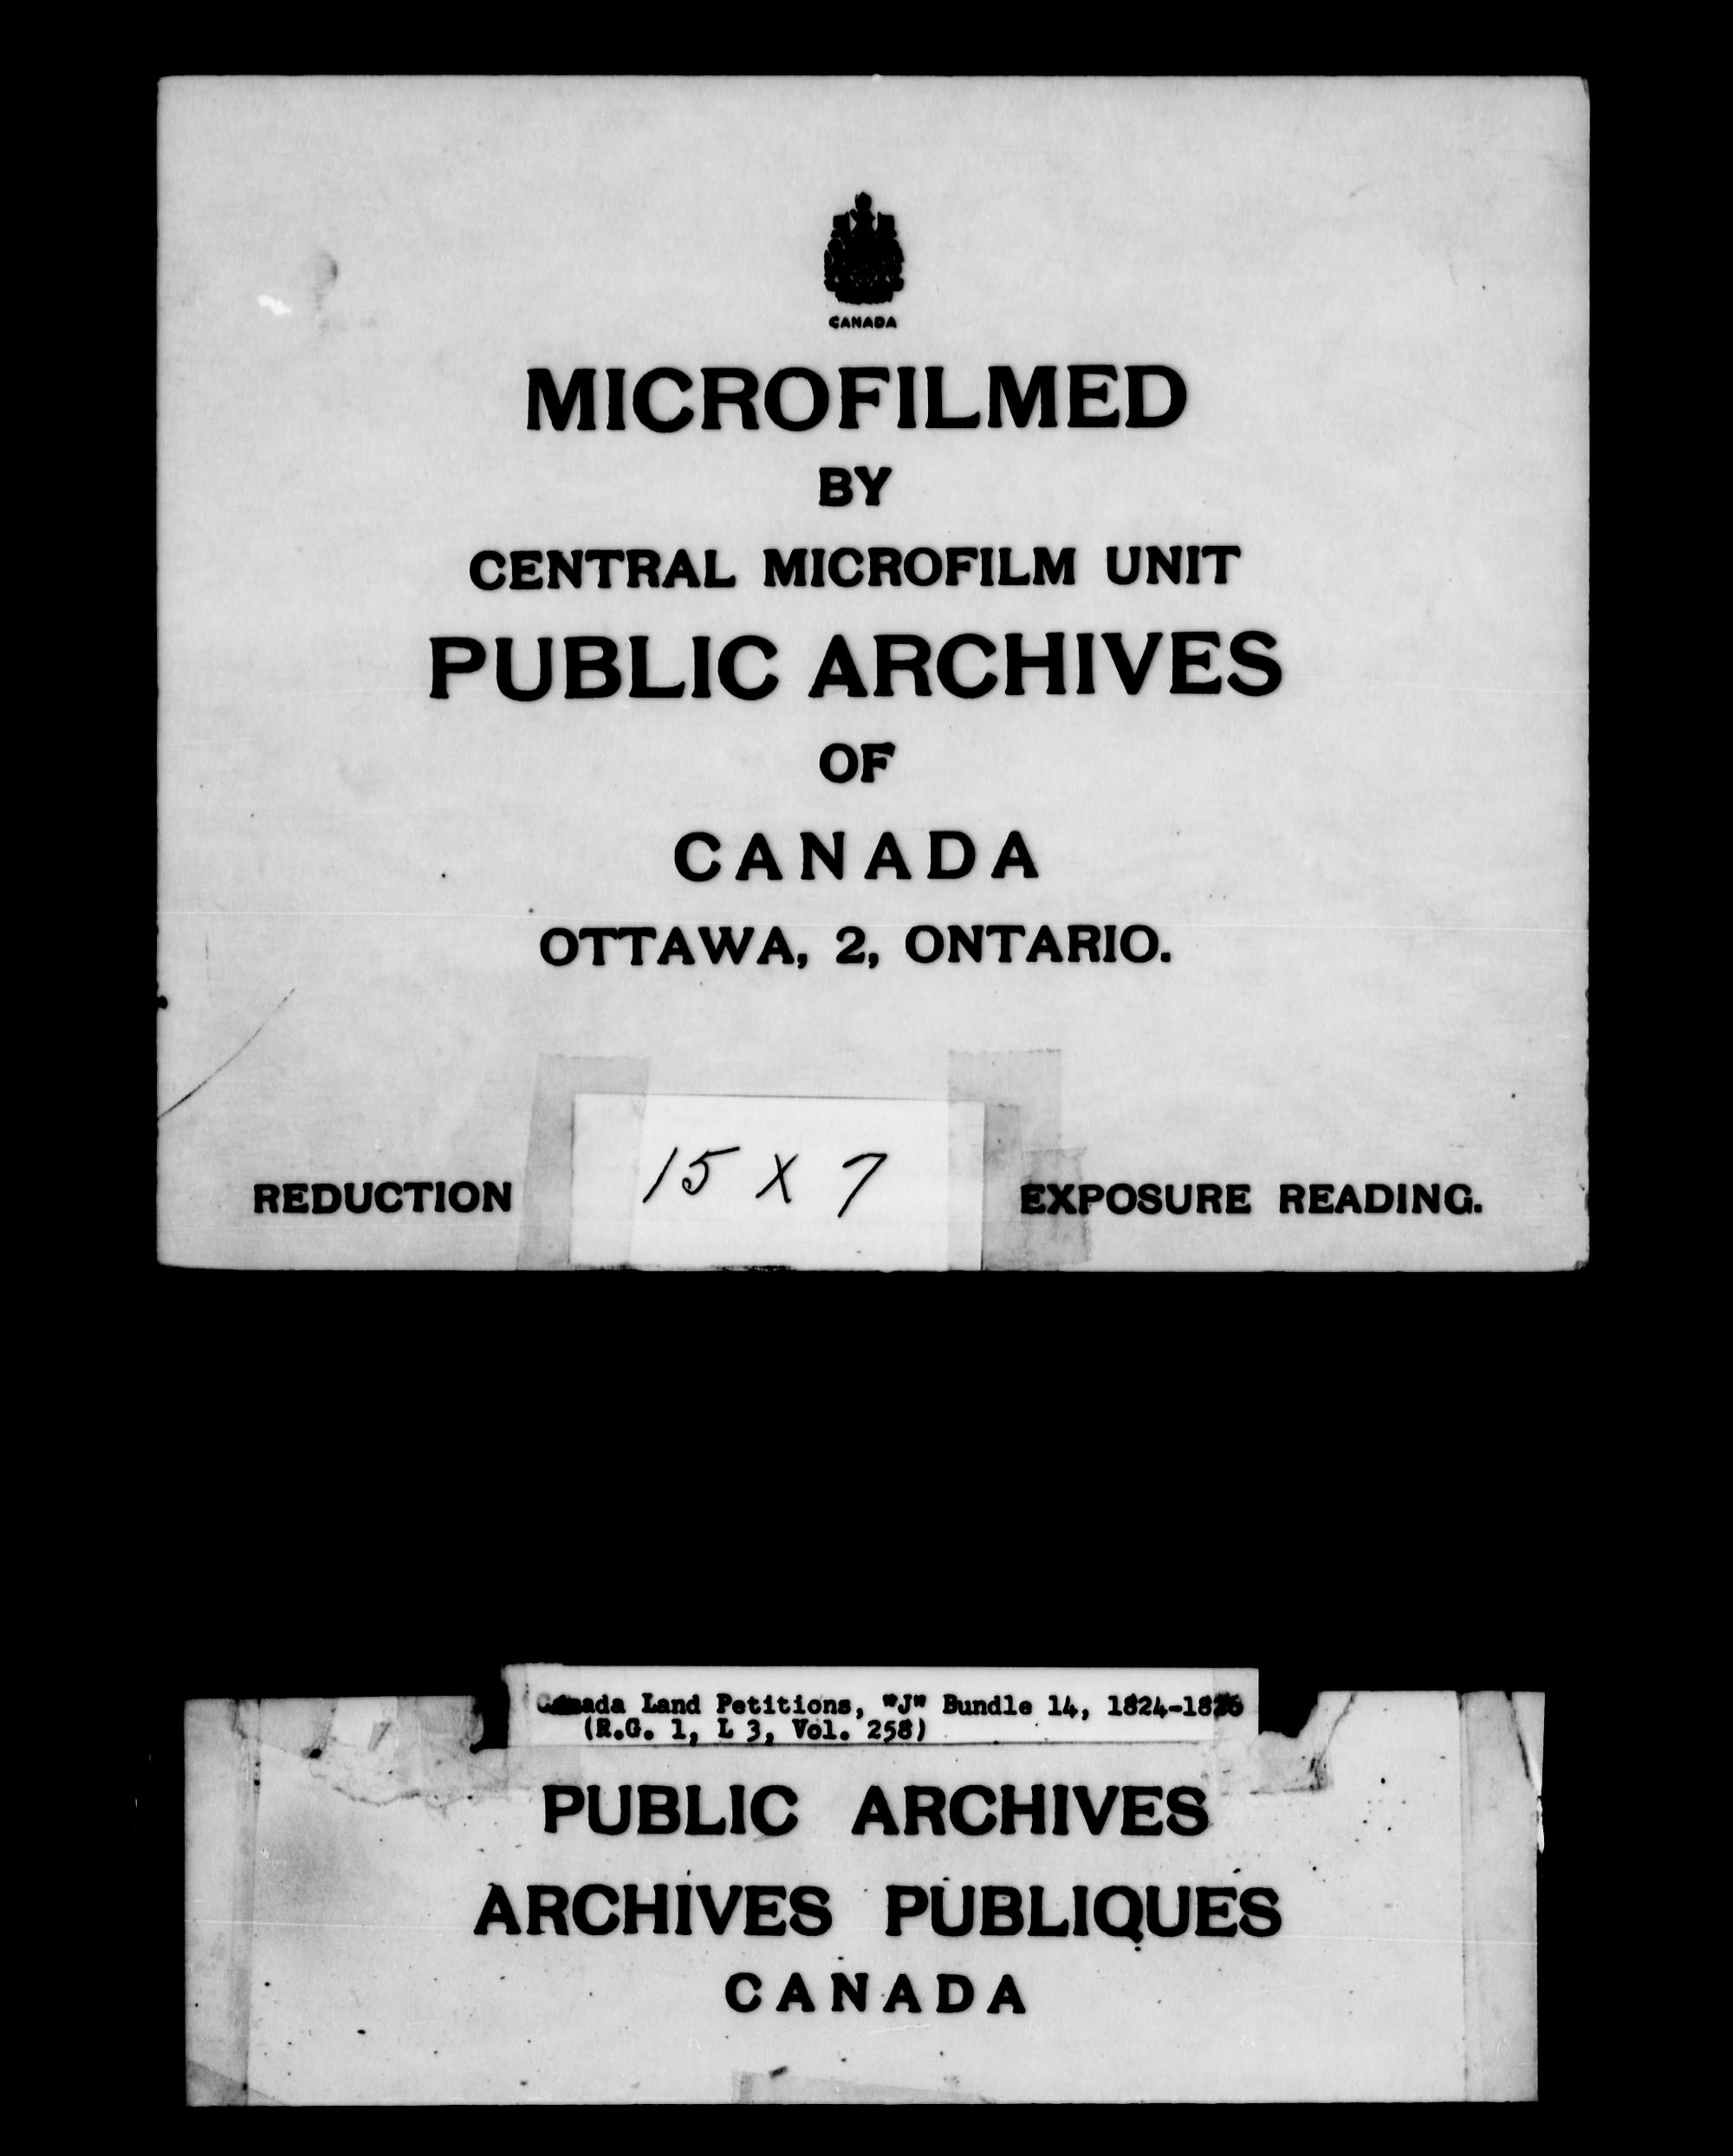 Title: Upper Canada Land Petitions (1763-1865) - Mikan Number: 205131 - Microform: c-2111